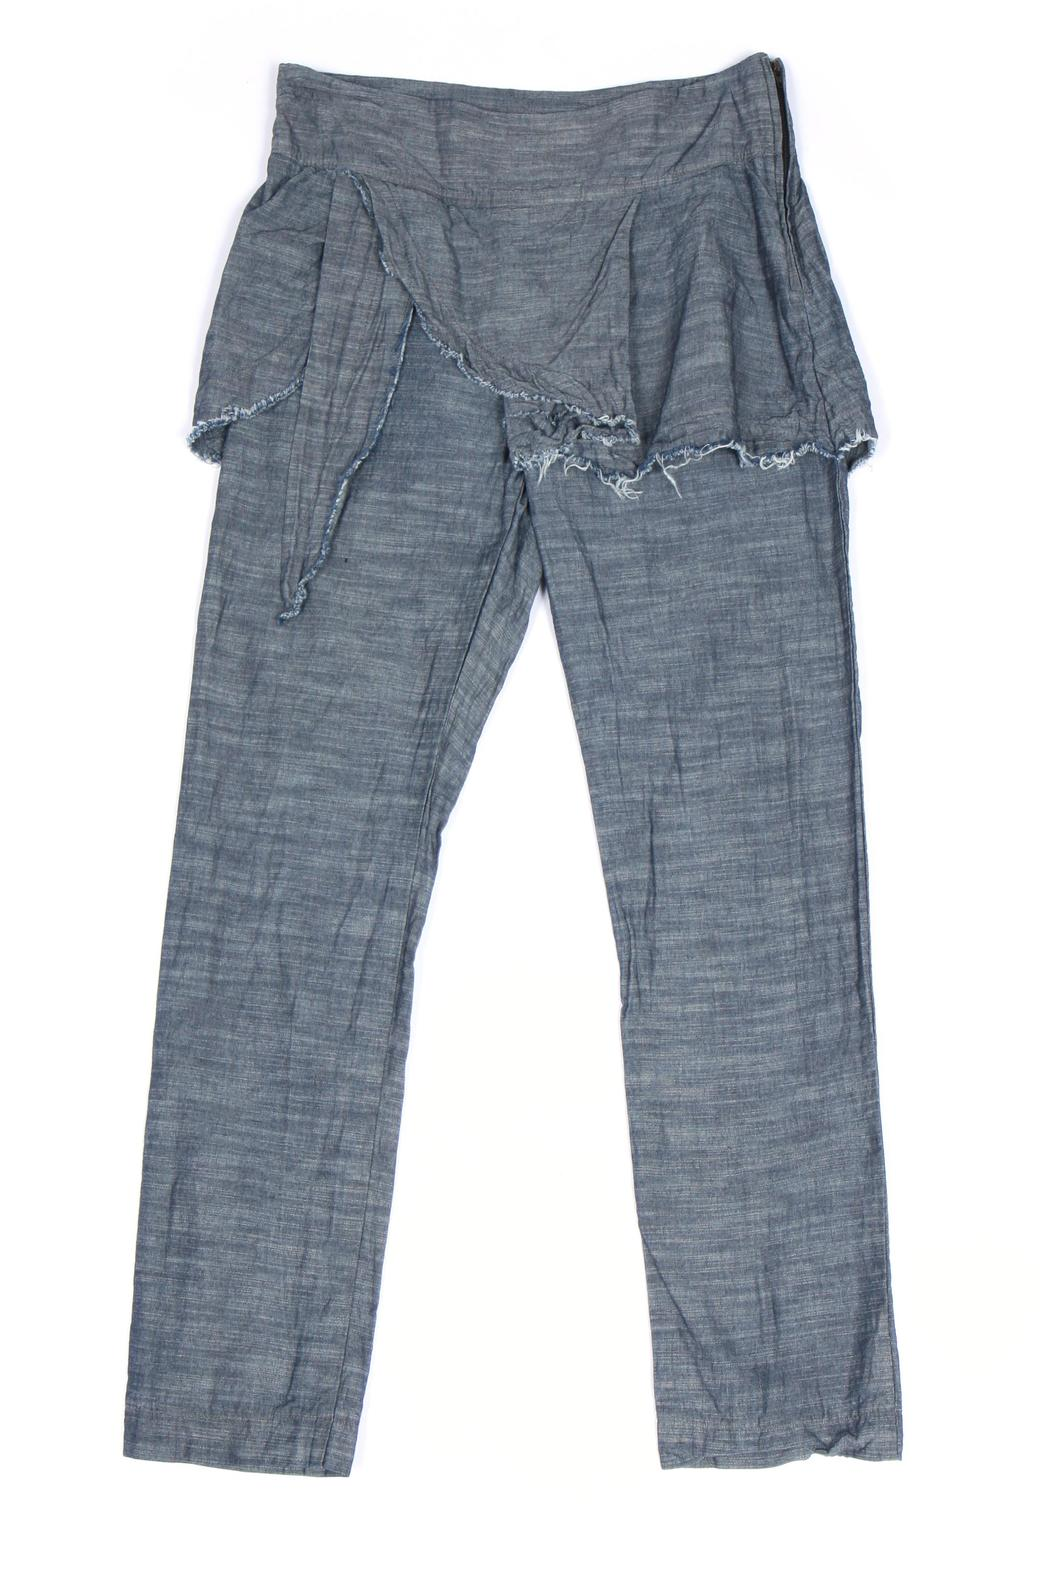 Prairie Underground Chambray Underwing Pants - Front Cropped Image